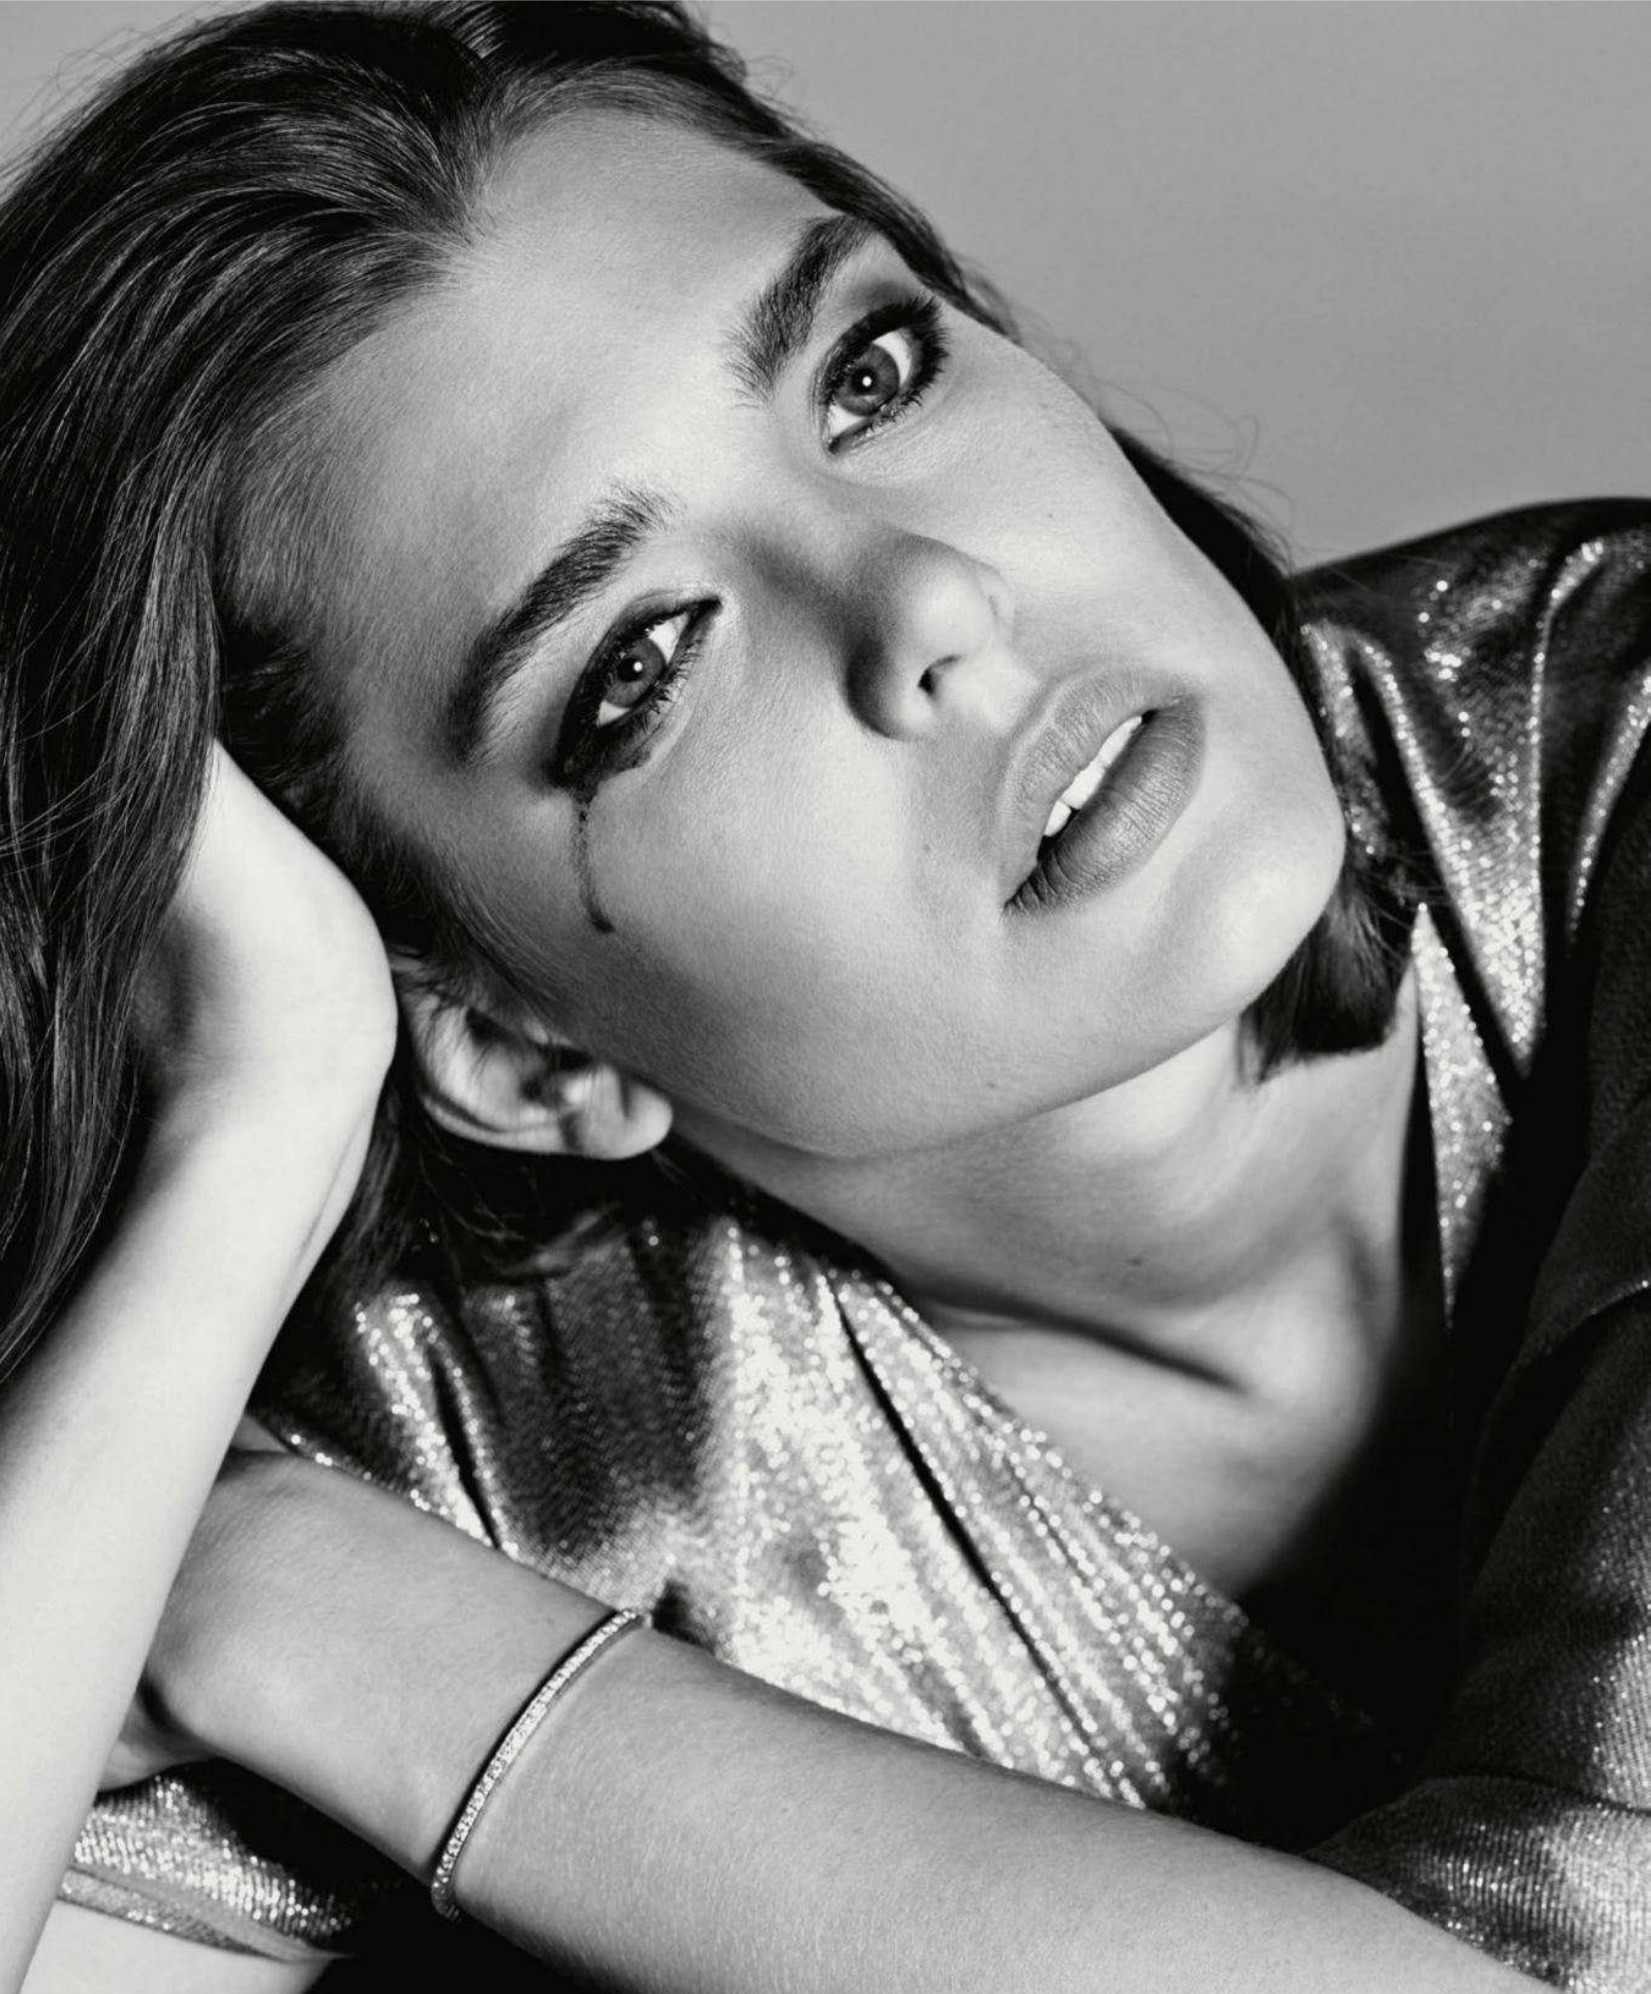 Charlotte-Casiraghi-by-Kacper-Kasprzyk-for-Harper's-Bazaar-US-October-2013-3